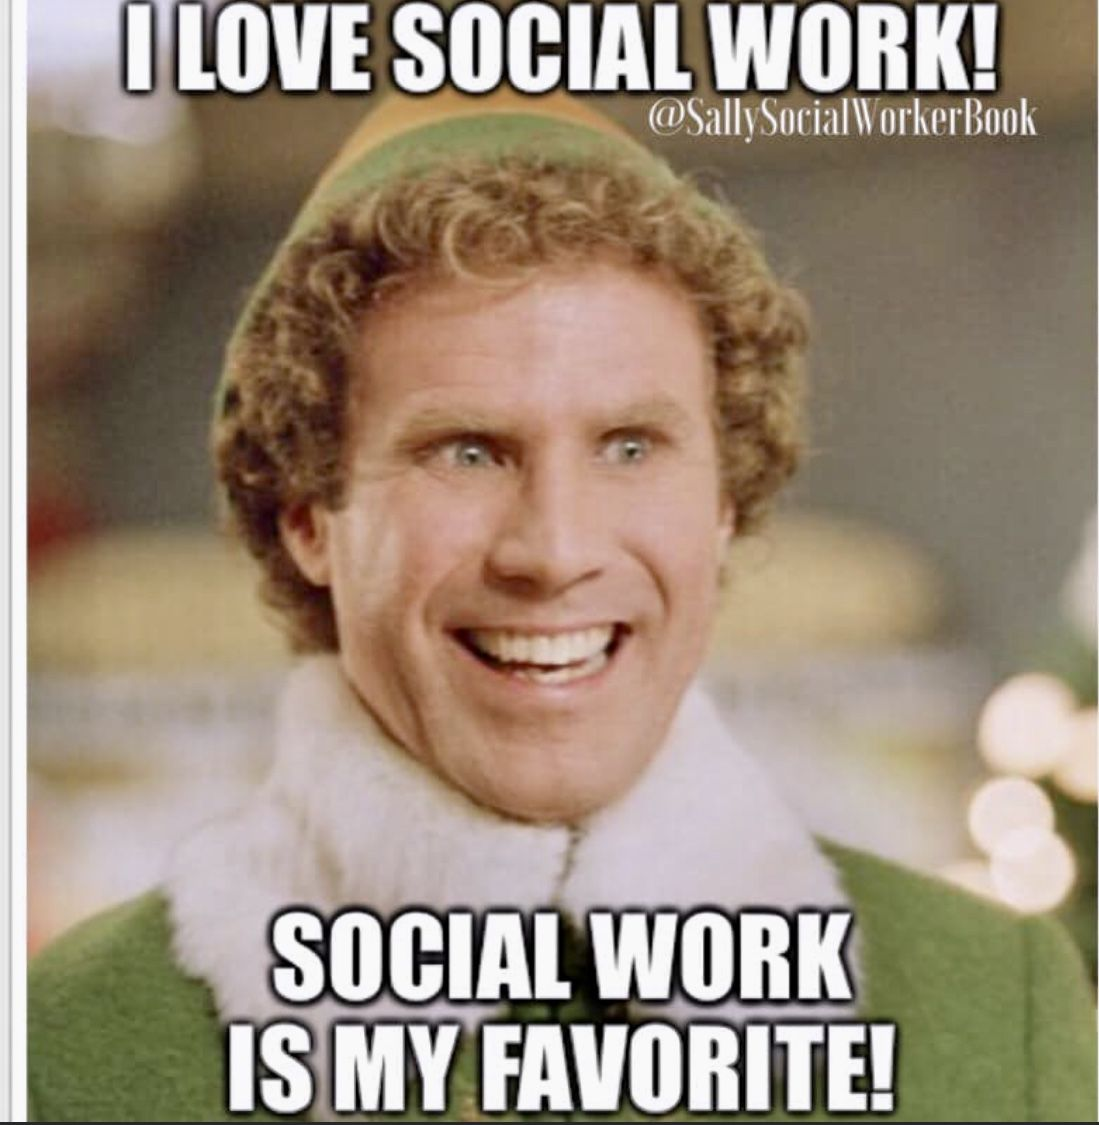 Pin on Social Work Humor (yes, it's a real thing!)